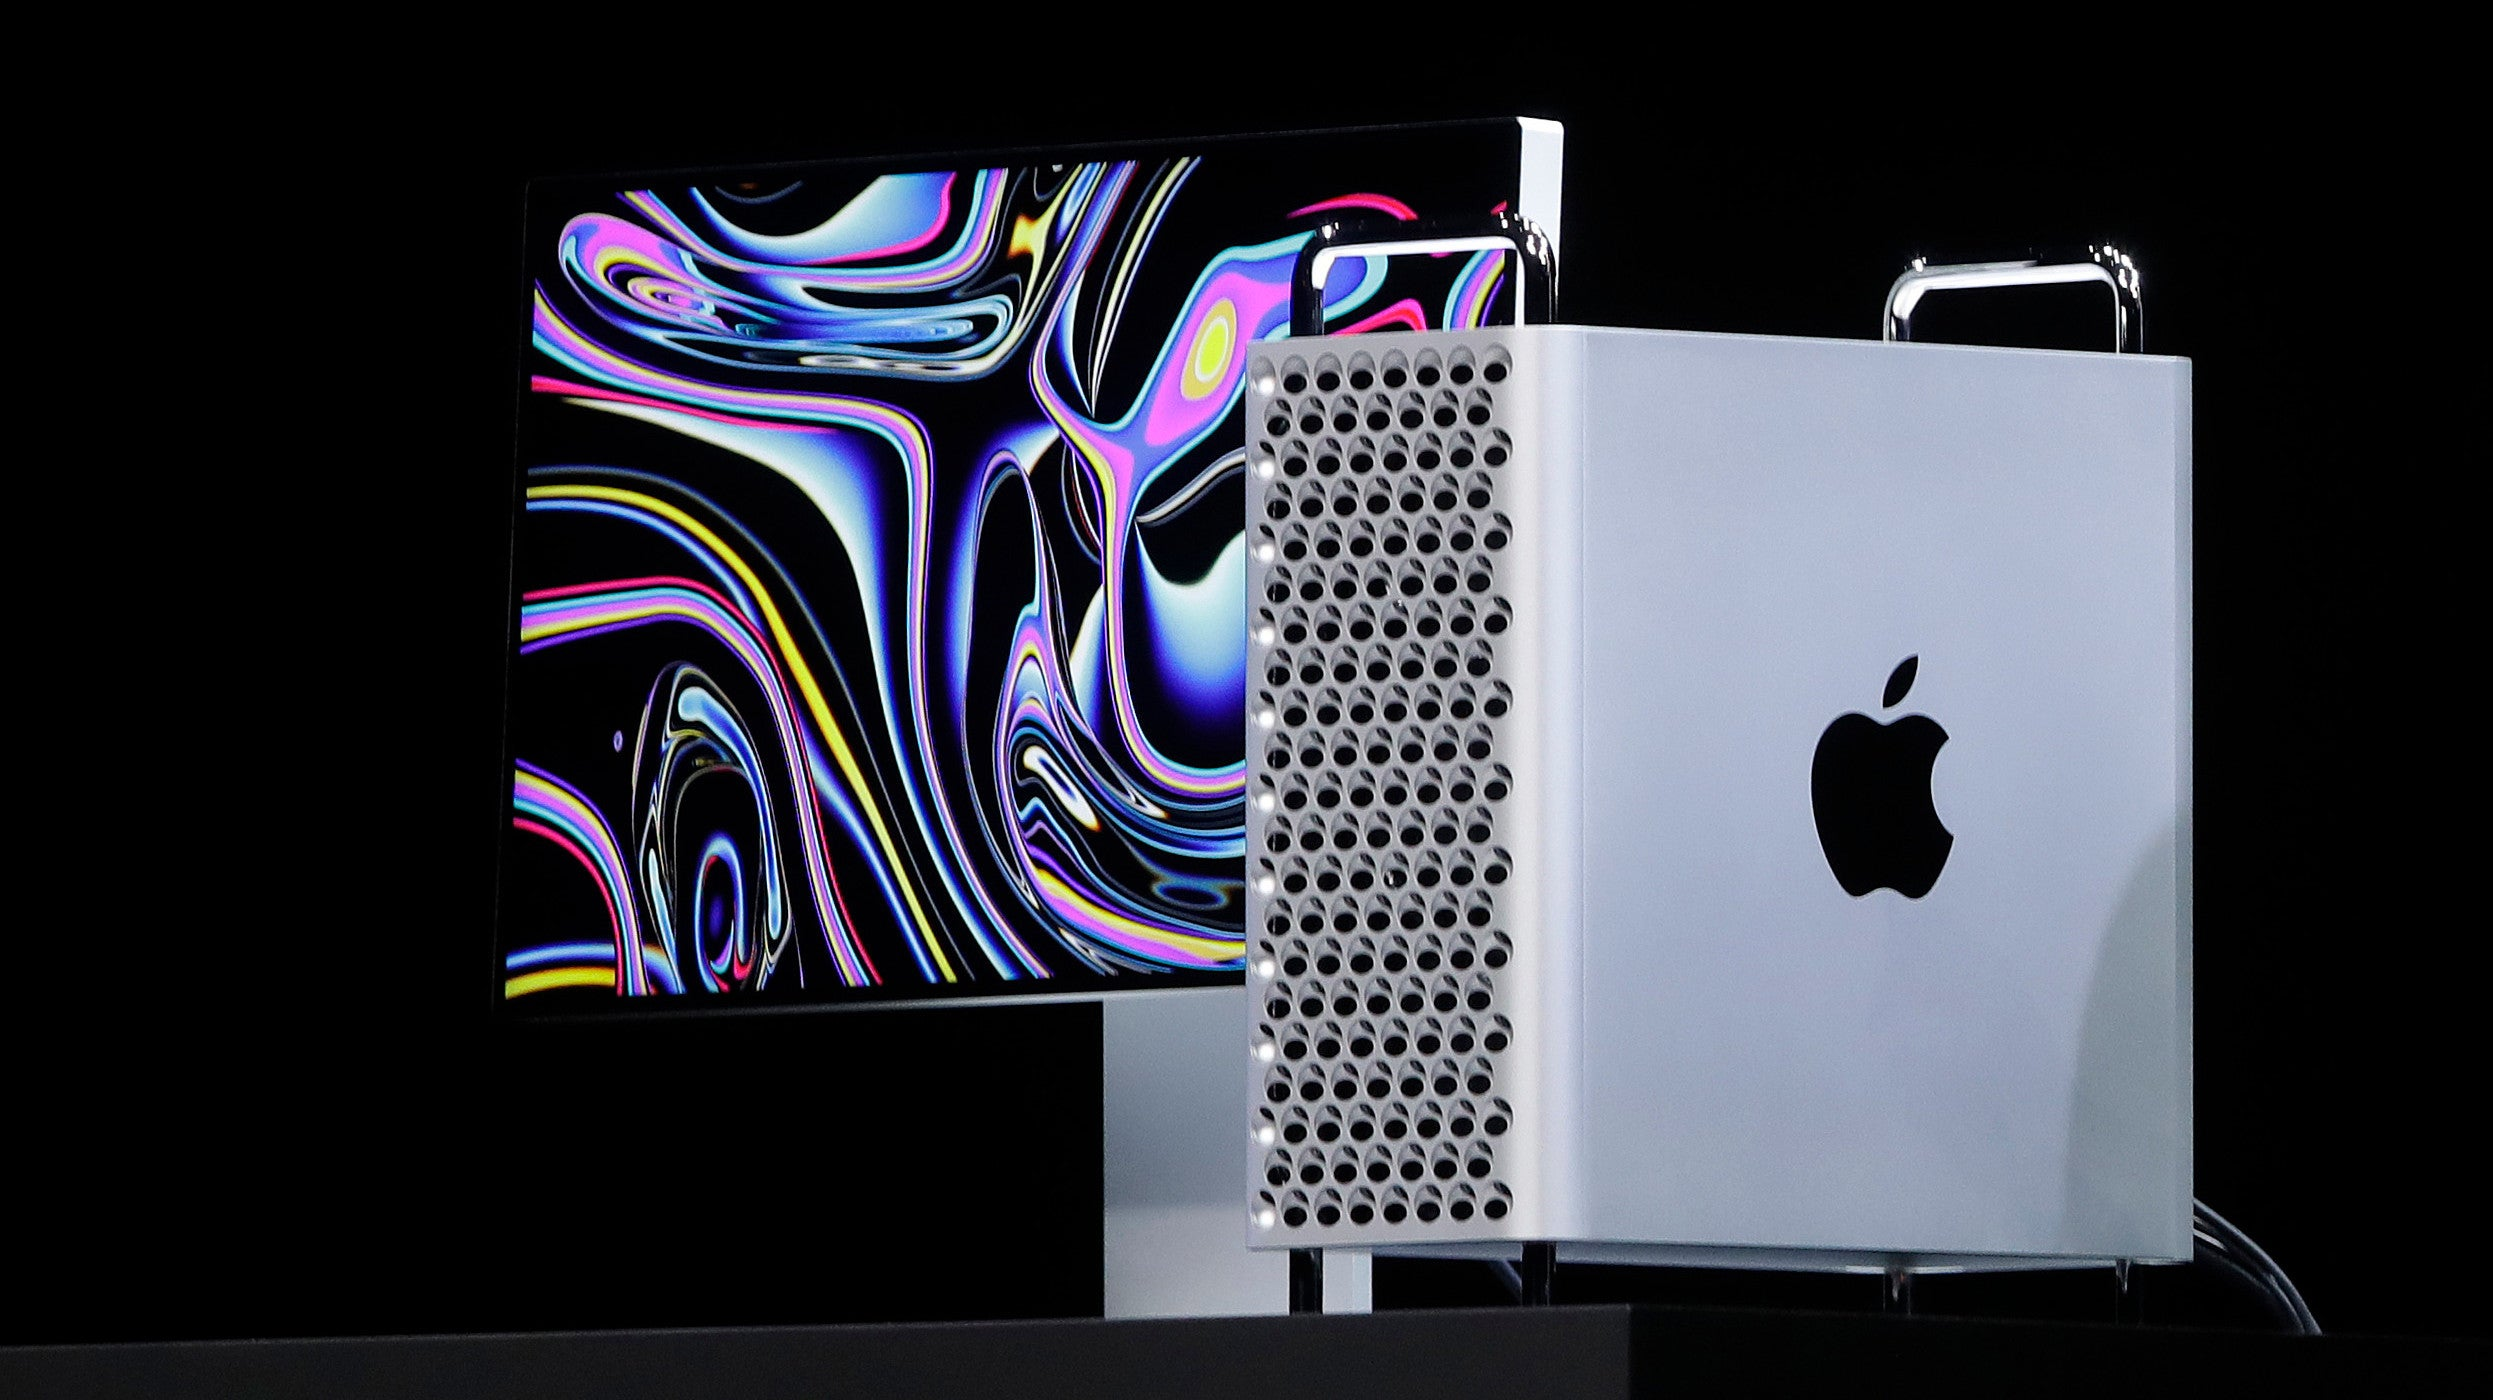 Customers Can Order Apple's Mac Pro And Its Killer Display This Week